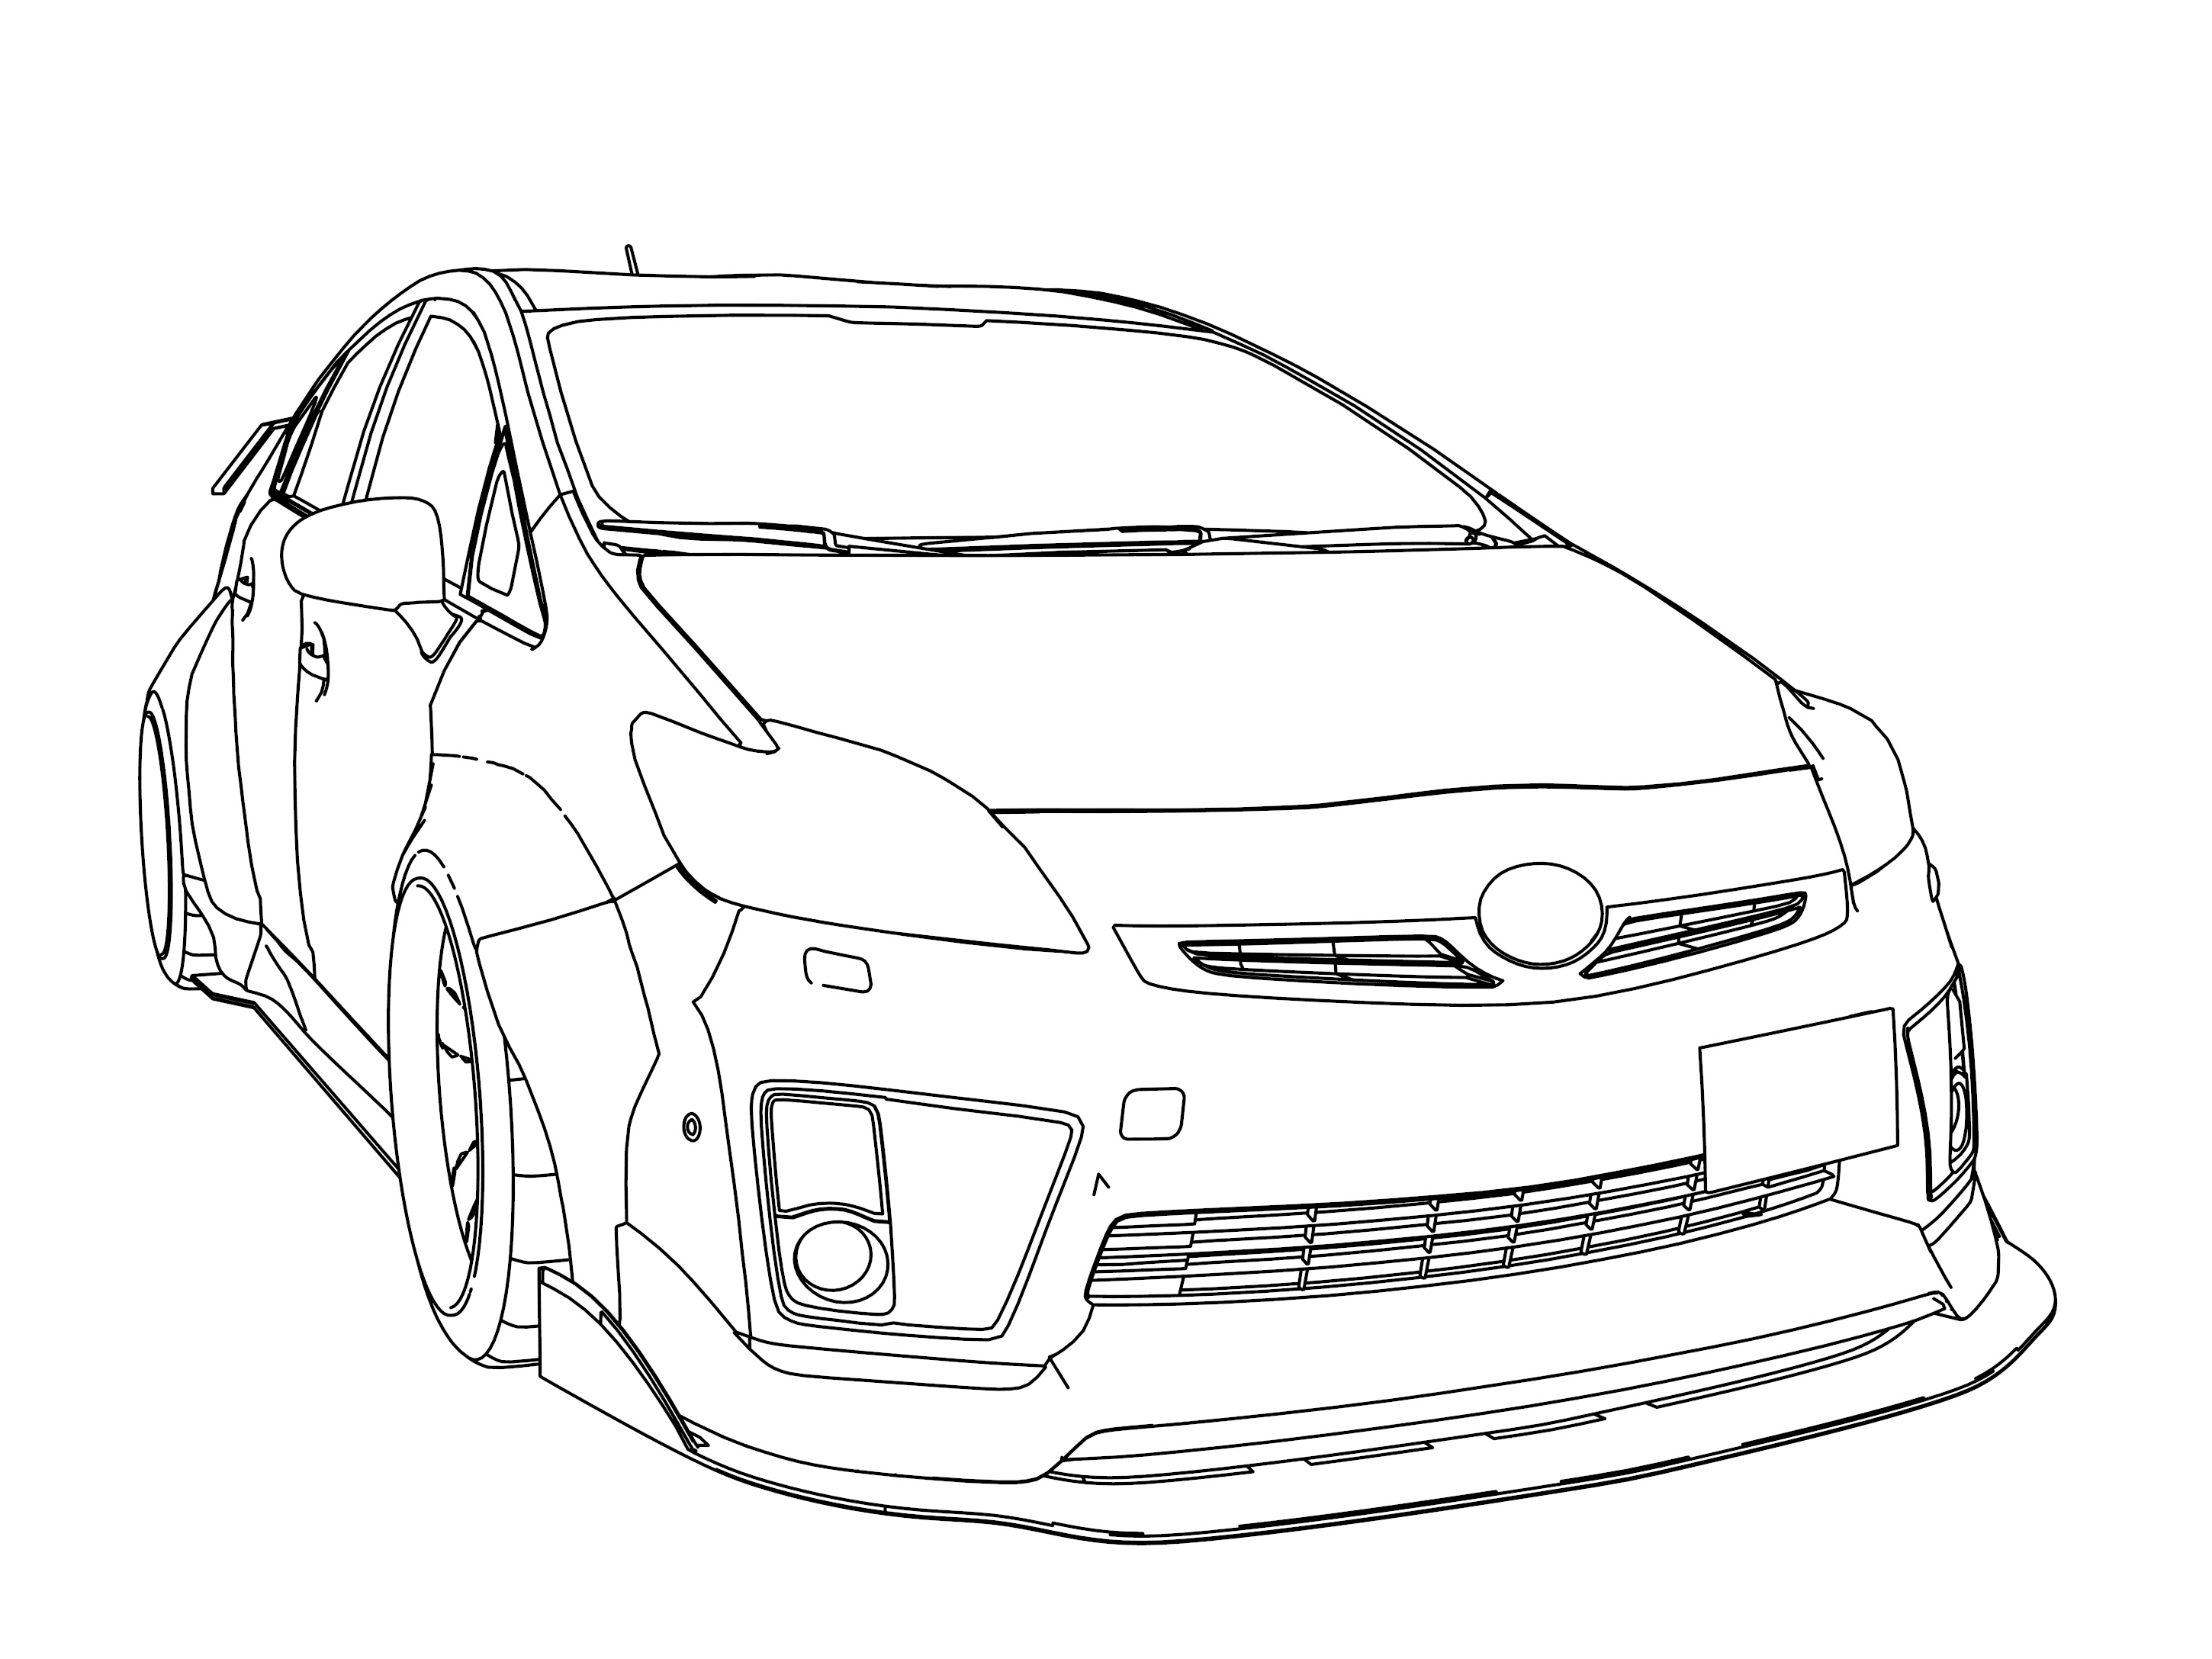 Toyota Prius LBW 2011 Perspective View Coloring Page